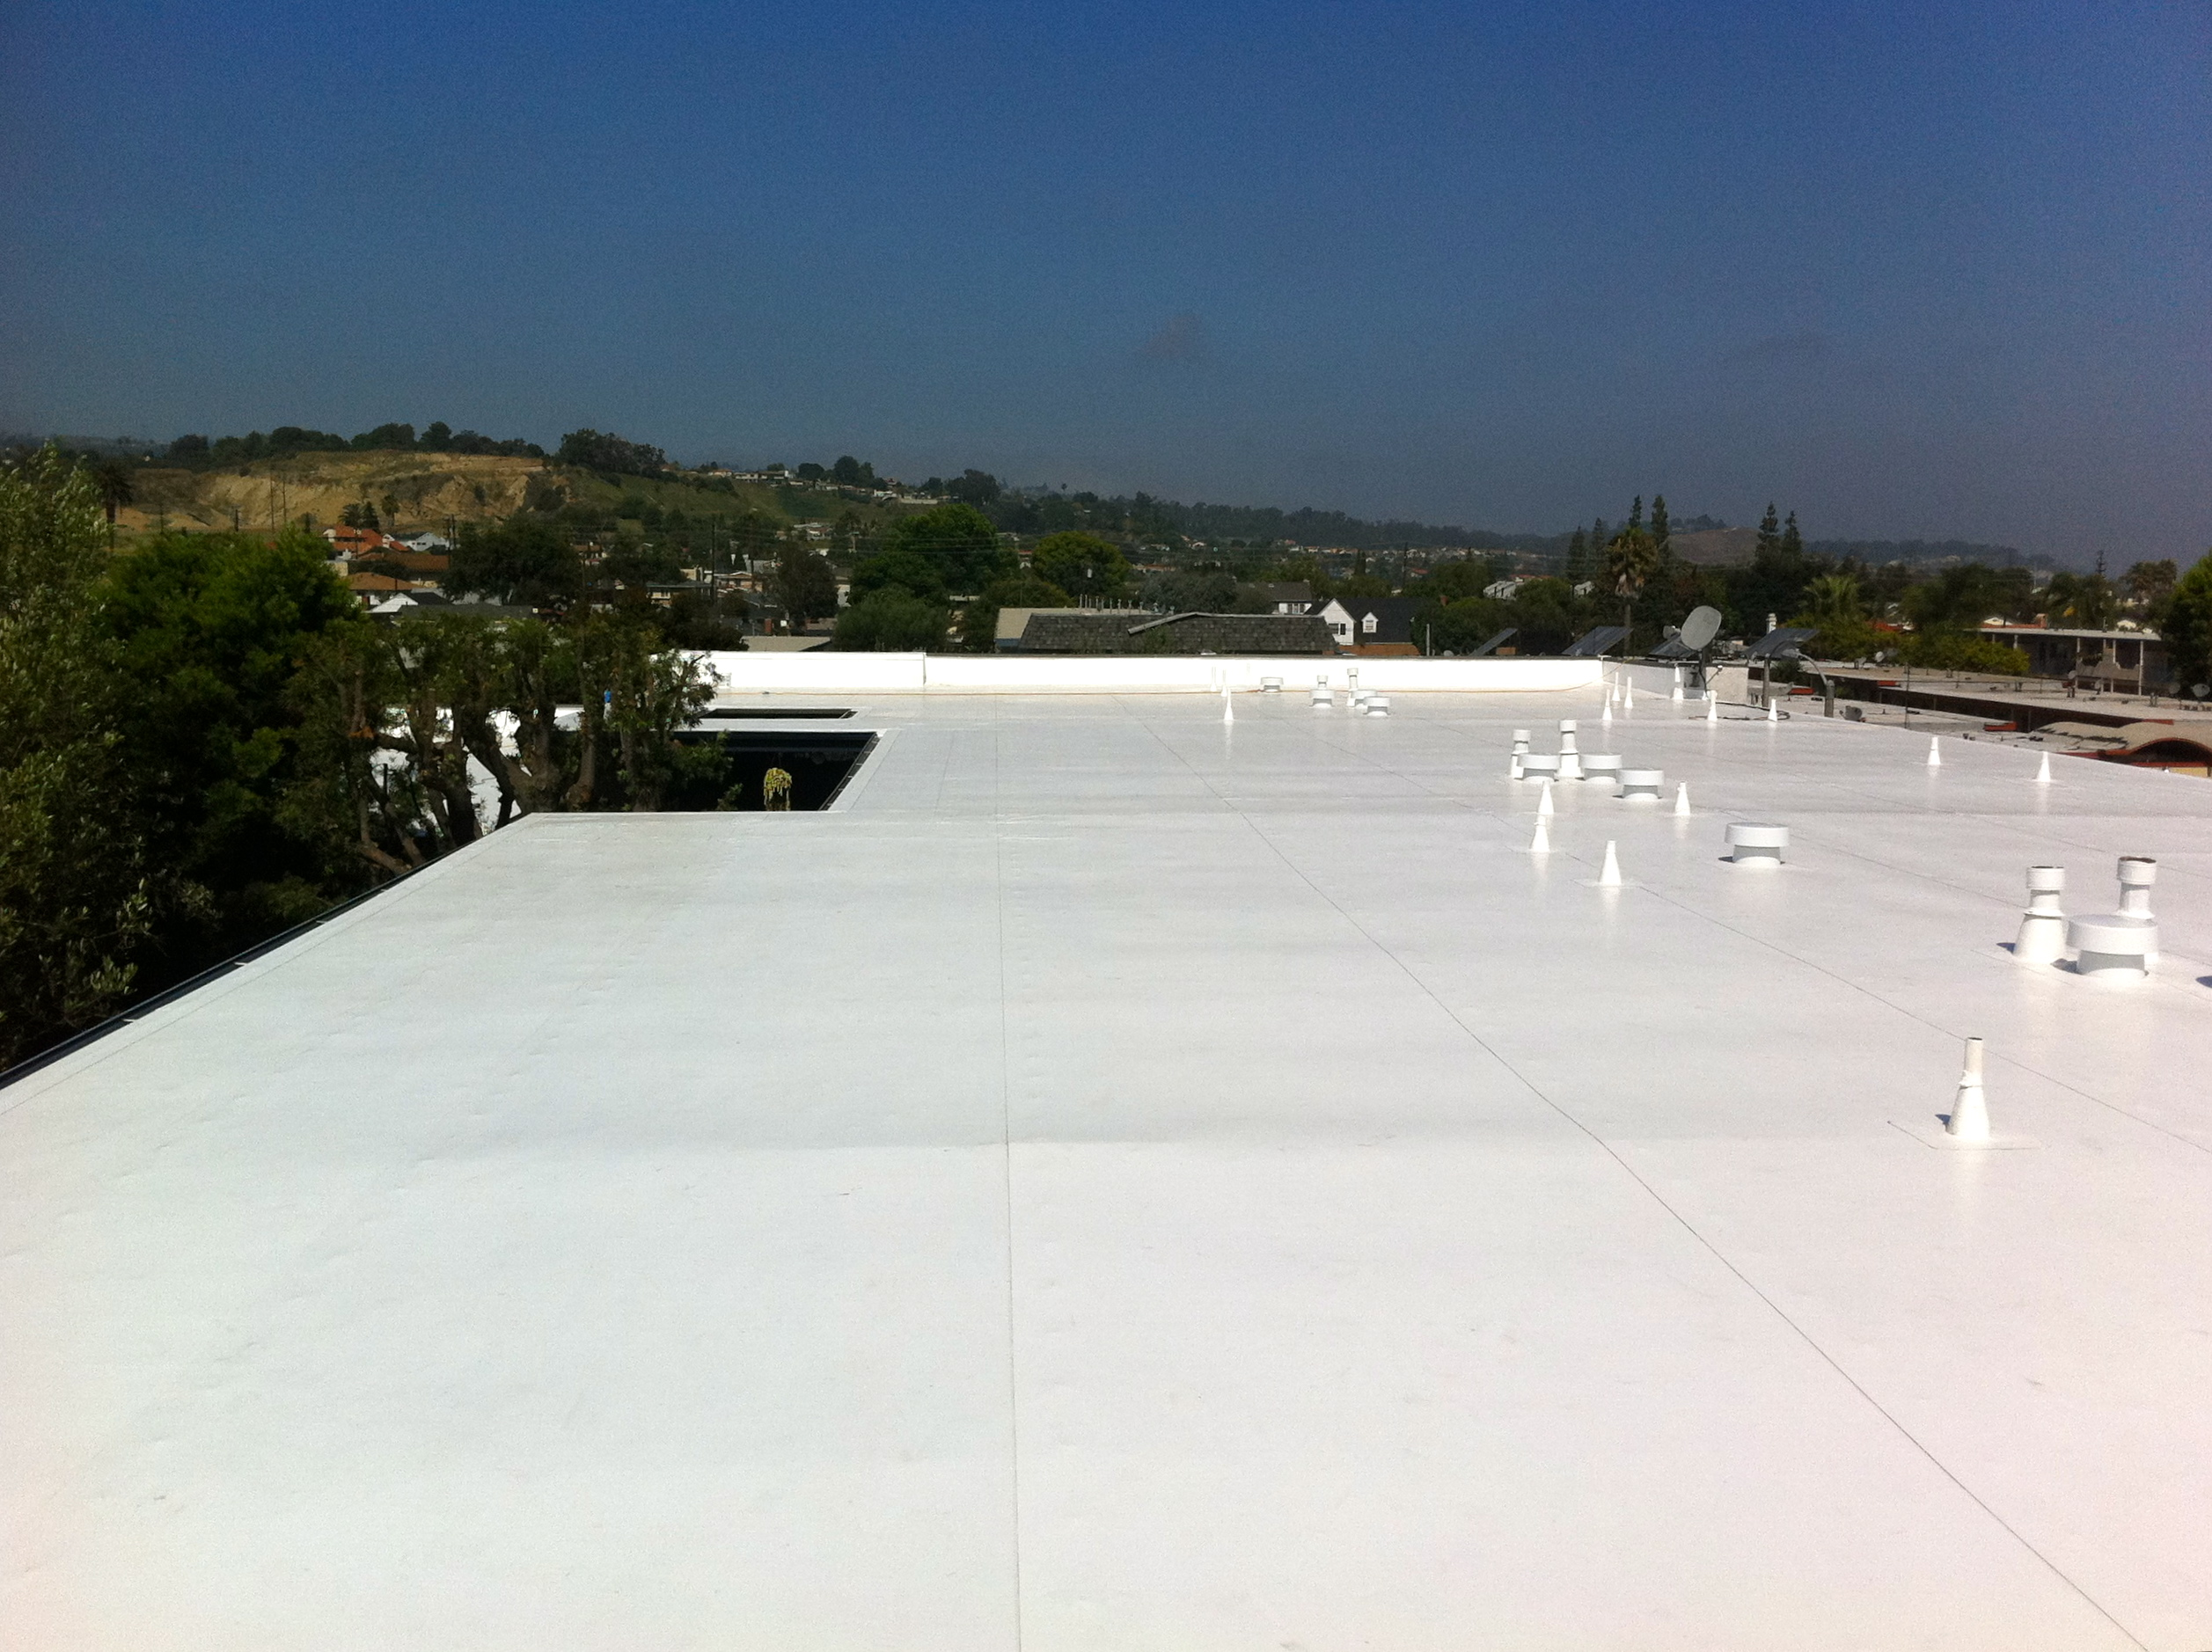 80 Mil IB Roof System Installed By Chandleru0027s Roofing On An HOA In Lomita,  CA.